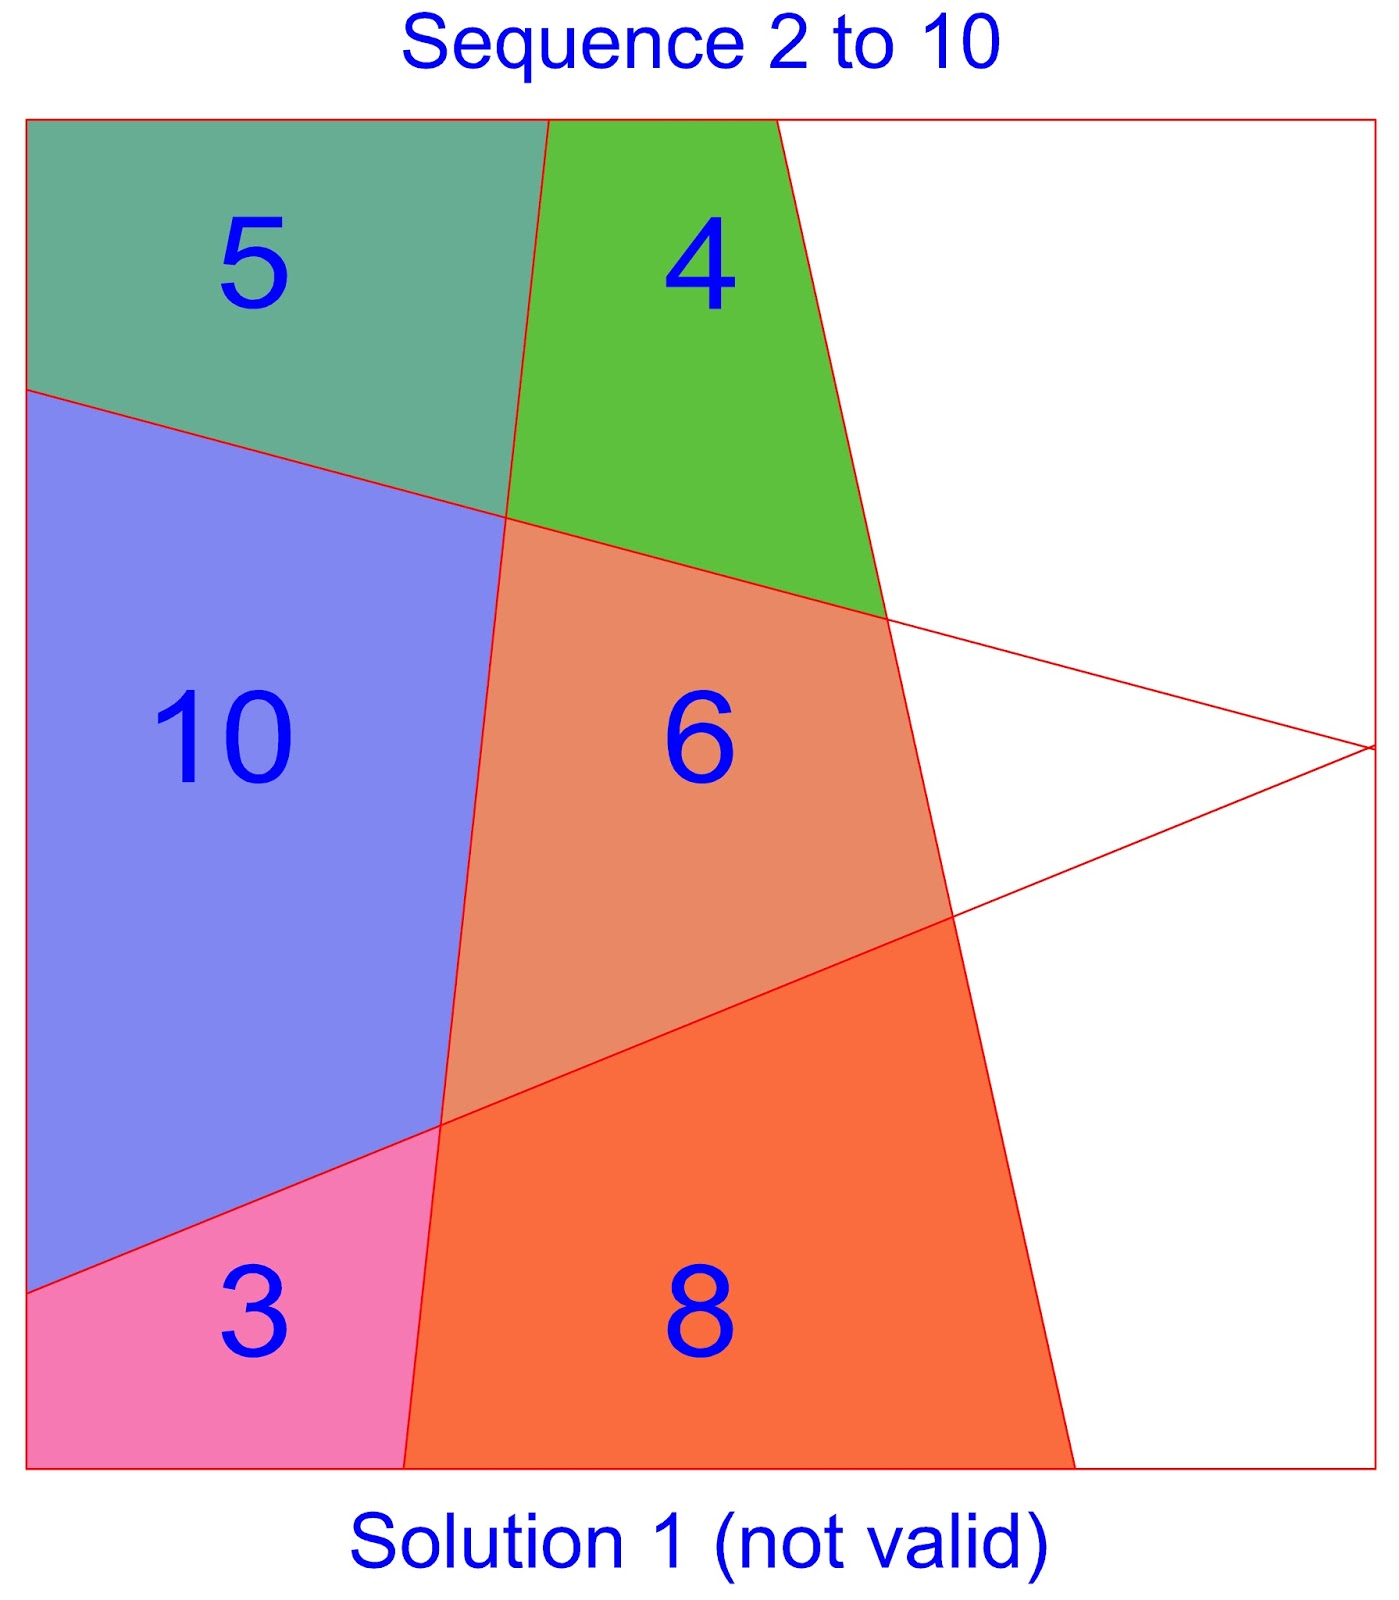 area 1 2 absinc 21 radians c) 314 radians d) 1 radian 5 finding an arc length when the angle is given in degrees a = 1 2 absinc) area of triangle = 1 2 r2 sin.